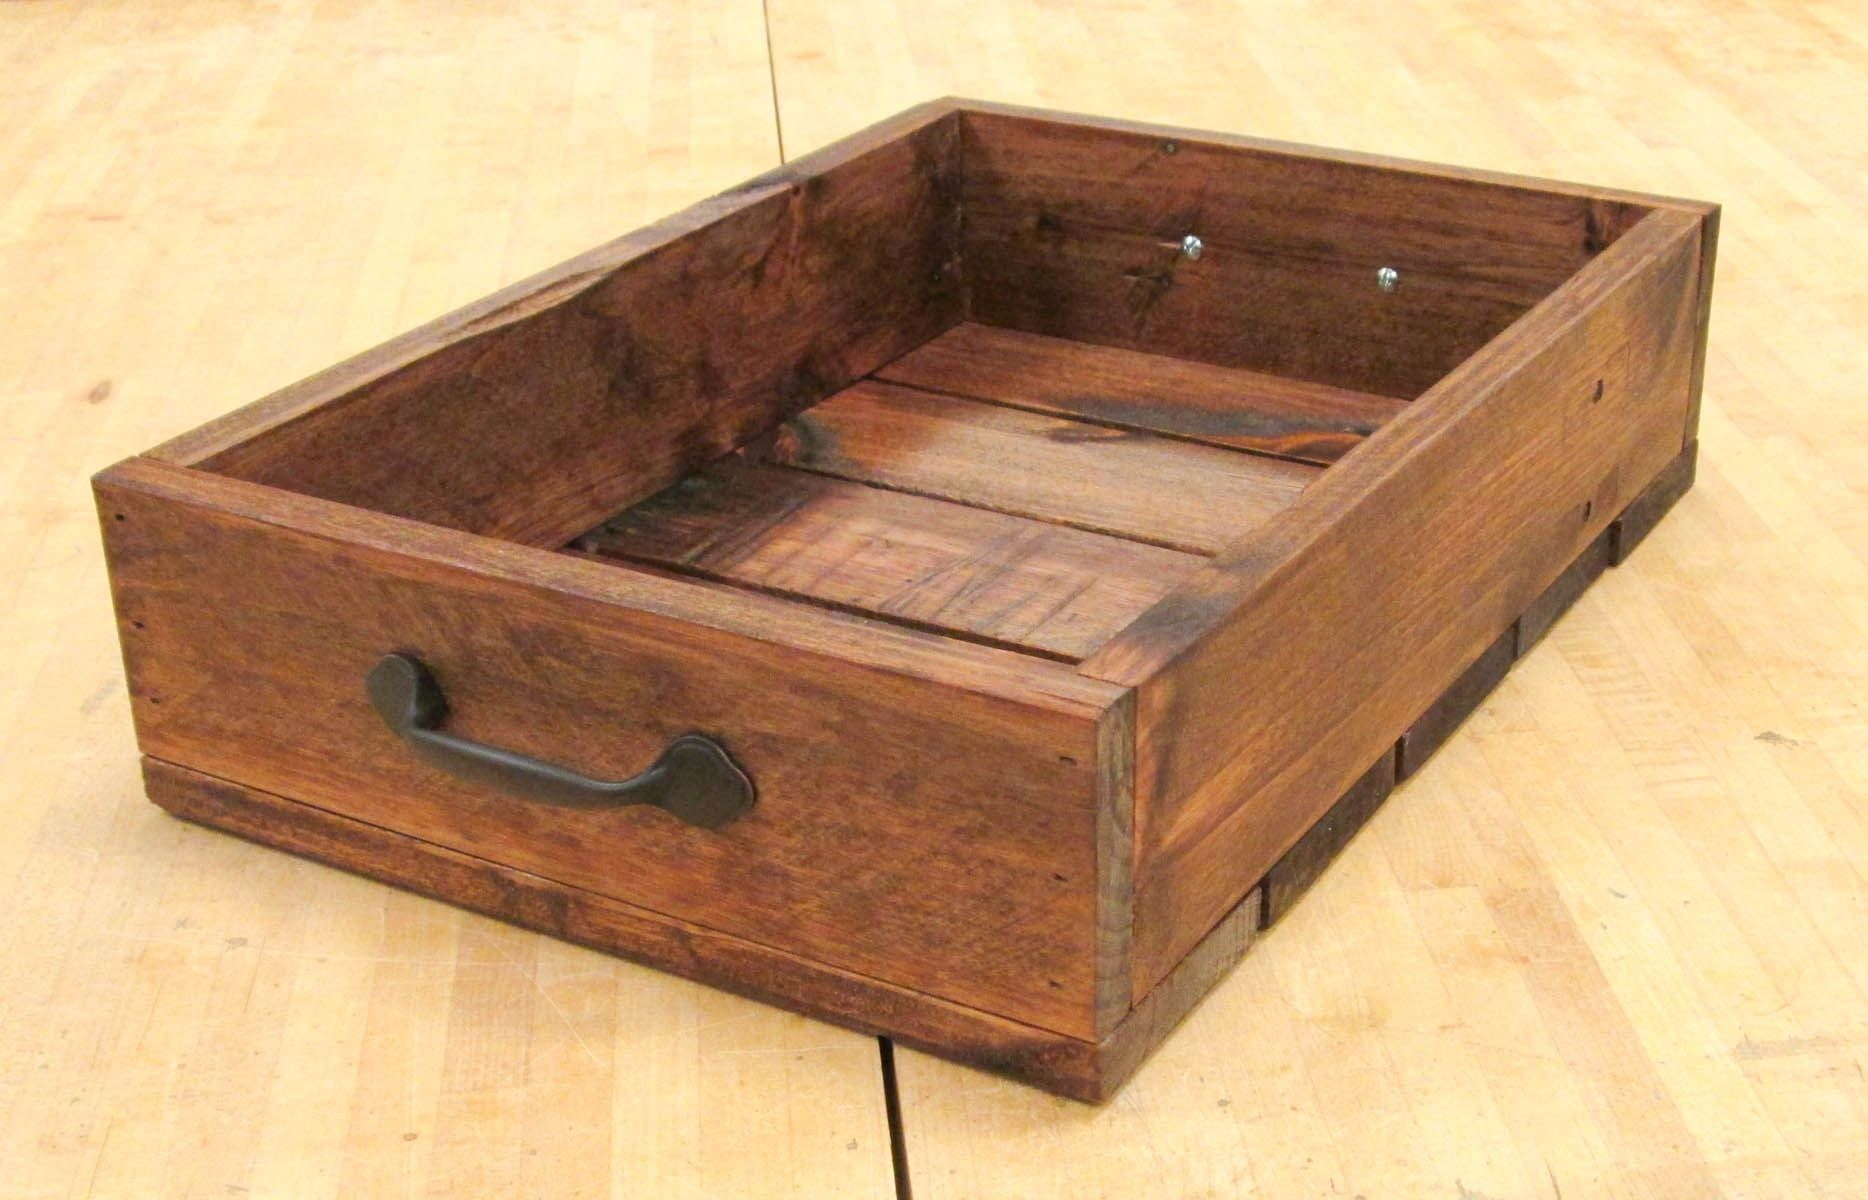 Hand Made Rustic Wooden Crate With Handles Made From Reclaimed